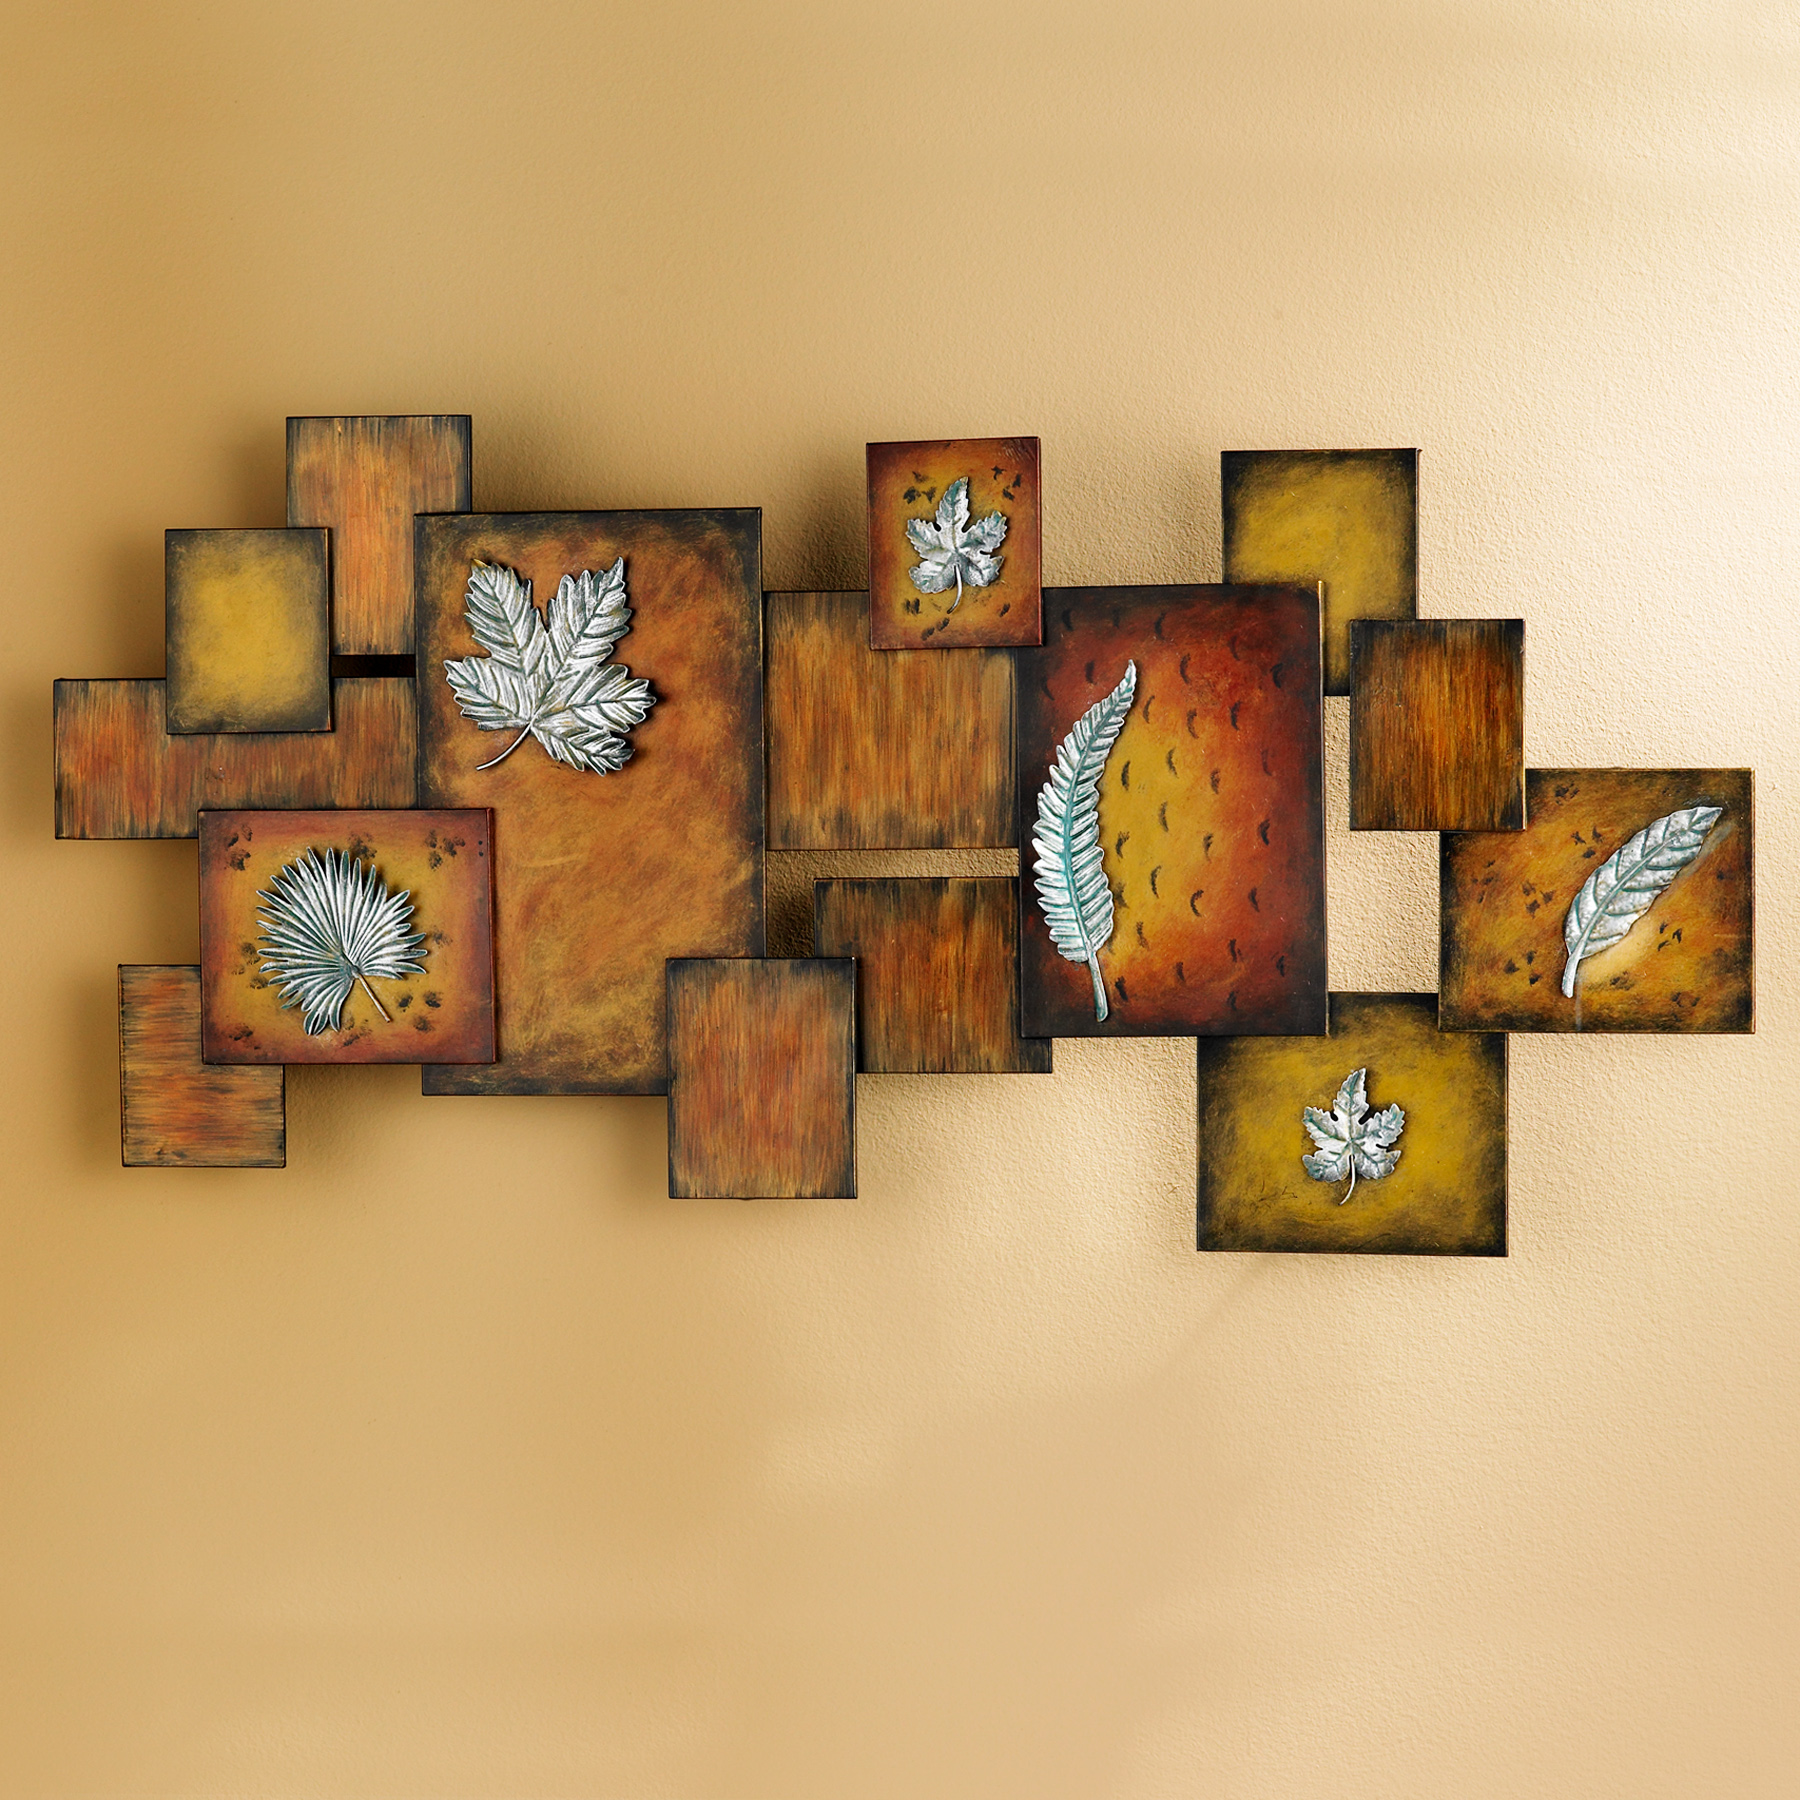 Home Artwork Decor: Leaves / Abstract Wall Art Panel